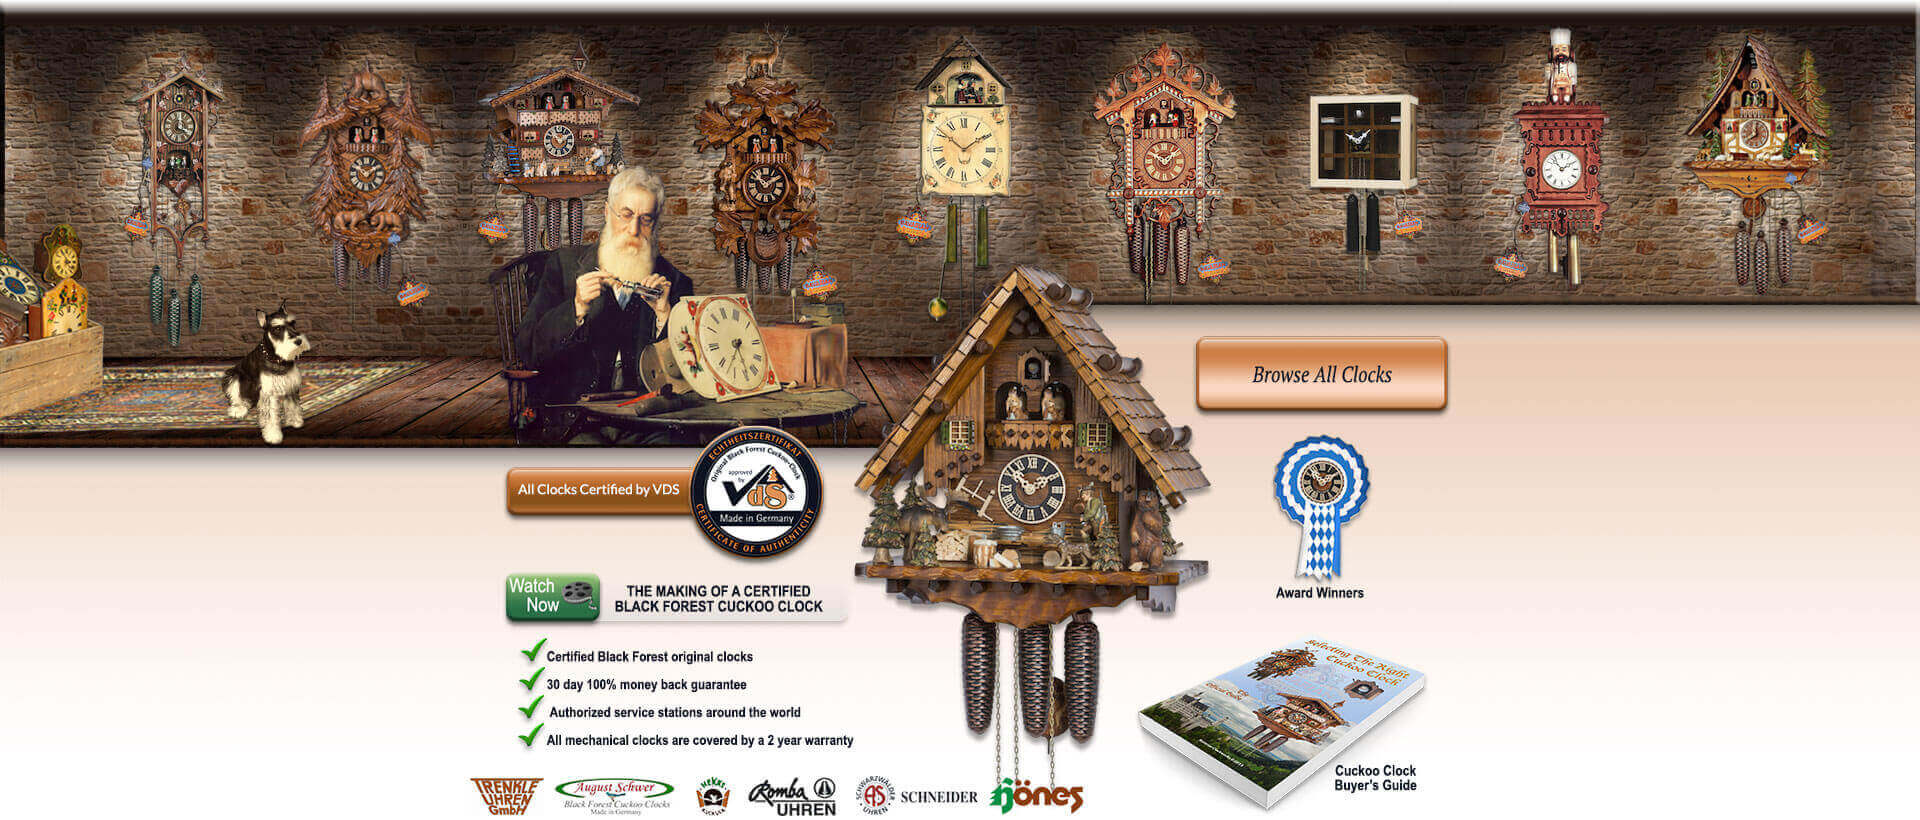 not sure where to begin start here - Black Forest Cuckoo Clocks